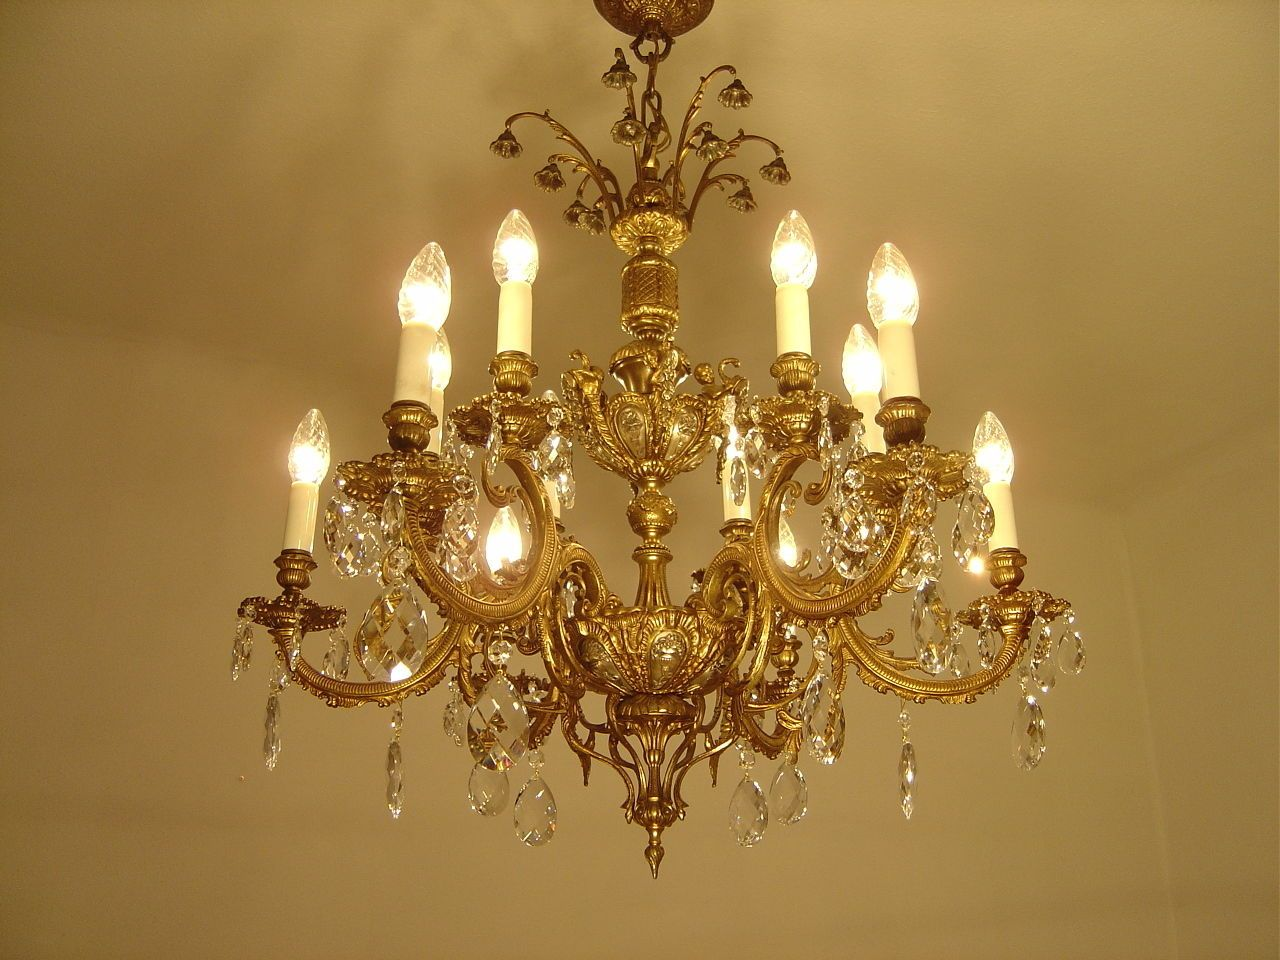 Diy Projects Crystal Prism World Crystal Chandelier Brass Chandelier Chandelier